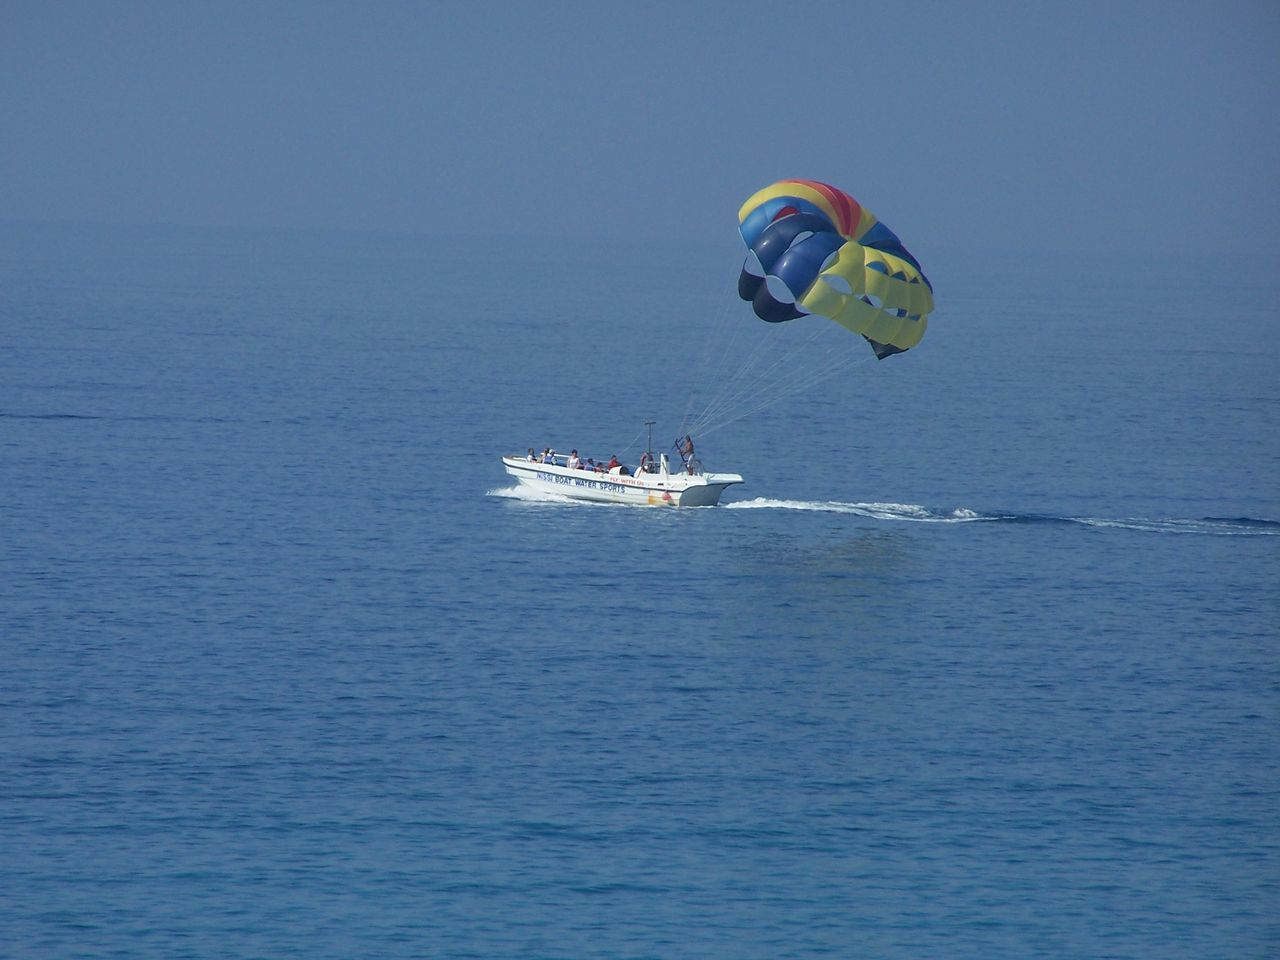 sea, nautical vessel, water, transportation, adventure, waterfront, leisure activity, nature, day, real people, outdoors, vacations, men, beauty in nature, scenics, extreme sports, horizon over water, blue, sailing, one person, sport, parachute, sky, jet boat, people